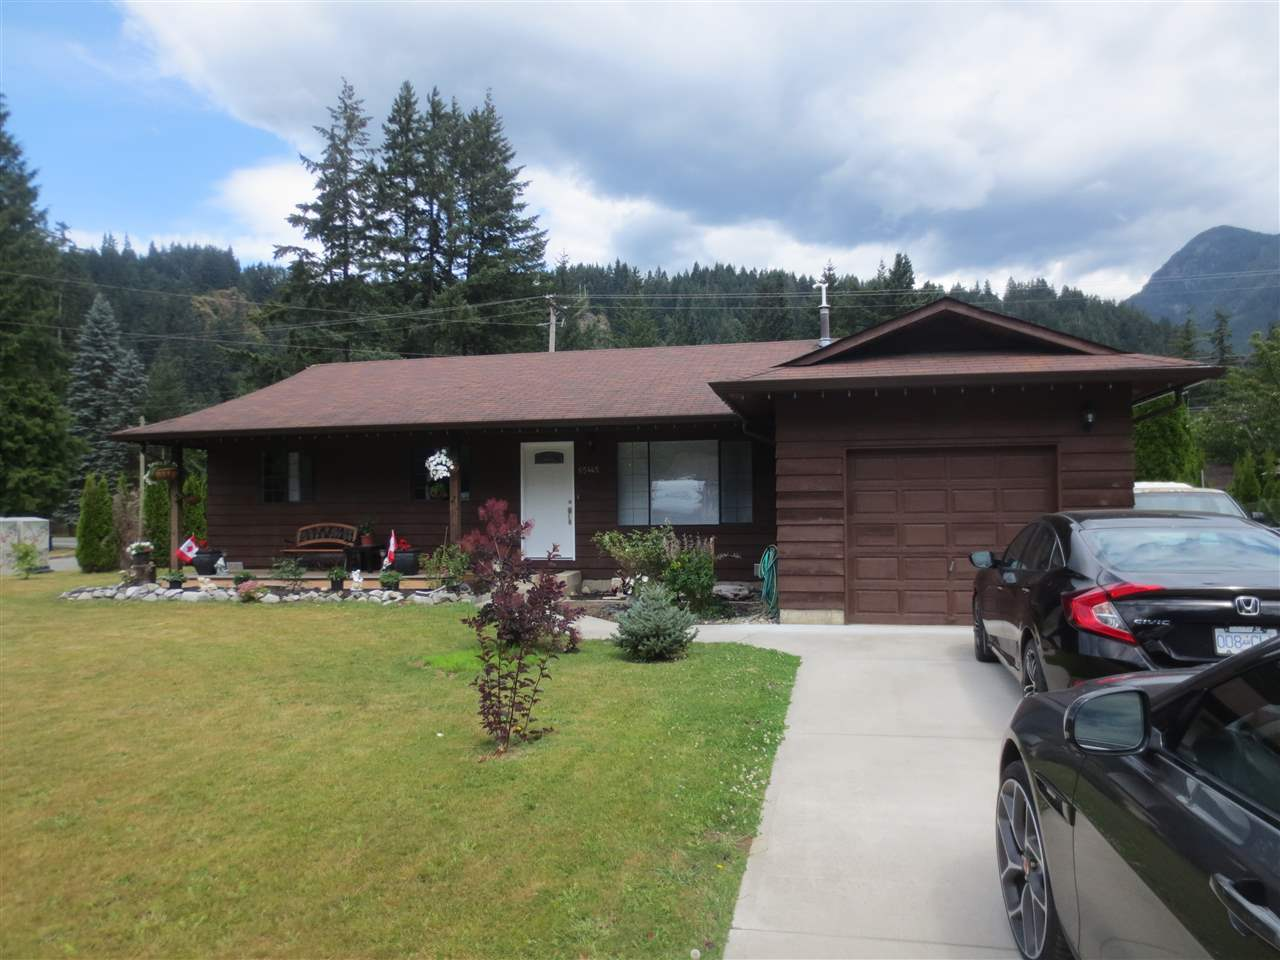 Nicely renovated 3 bedroom rancher home on large lot in desirable area with panoramic mountain views. New bathrooms, new furnace, new hot water tank, updated kitchen, new paint, light fixtures & many more updates! Large sliding doors off the back for natural light. Beautifully landscaped hedged private yard with a large 16 x 16 deck off the back. Seperate detached garage/workshop. Only minutes to Kawkawa Lake, the Coquihalla River, shopping and recreation. Call to view today.